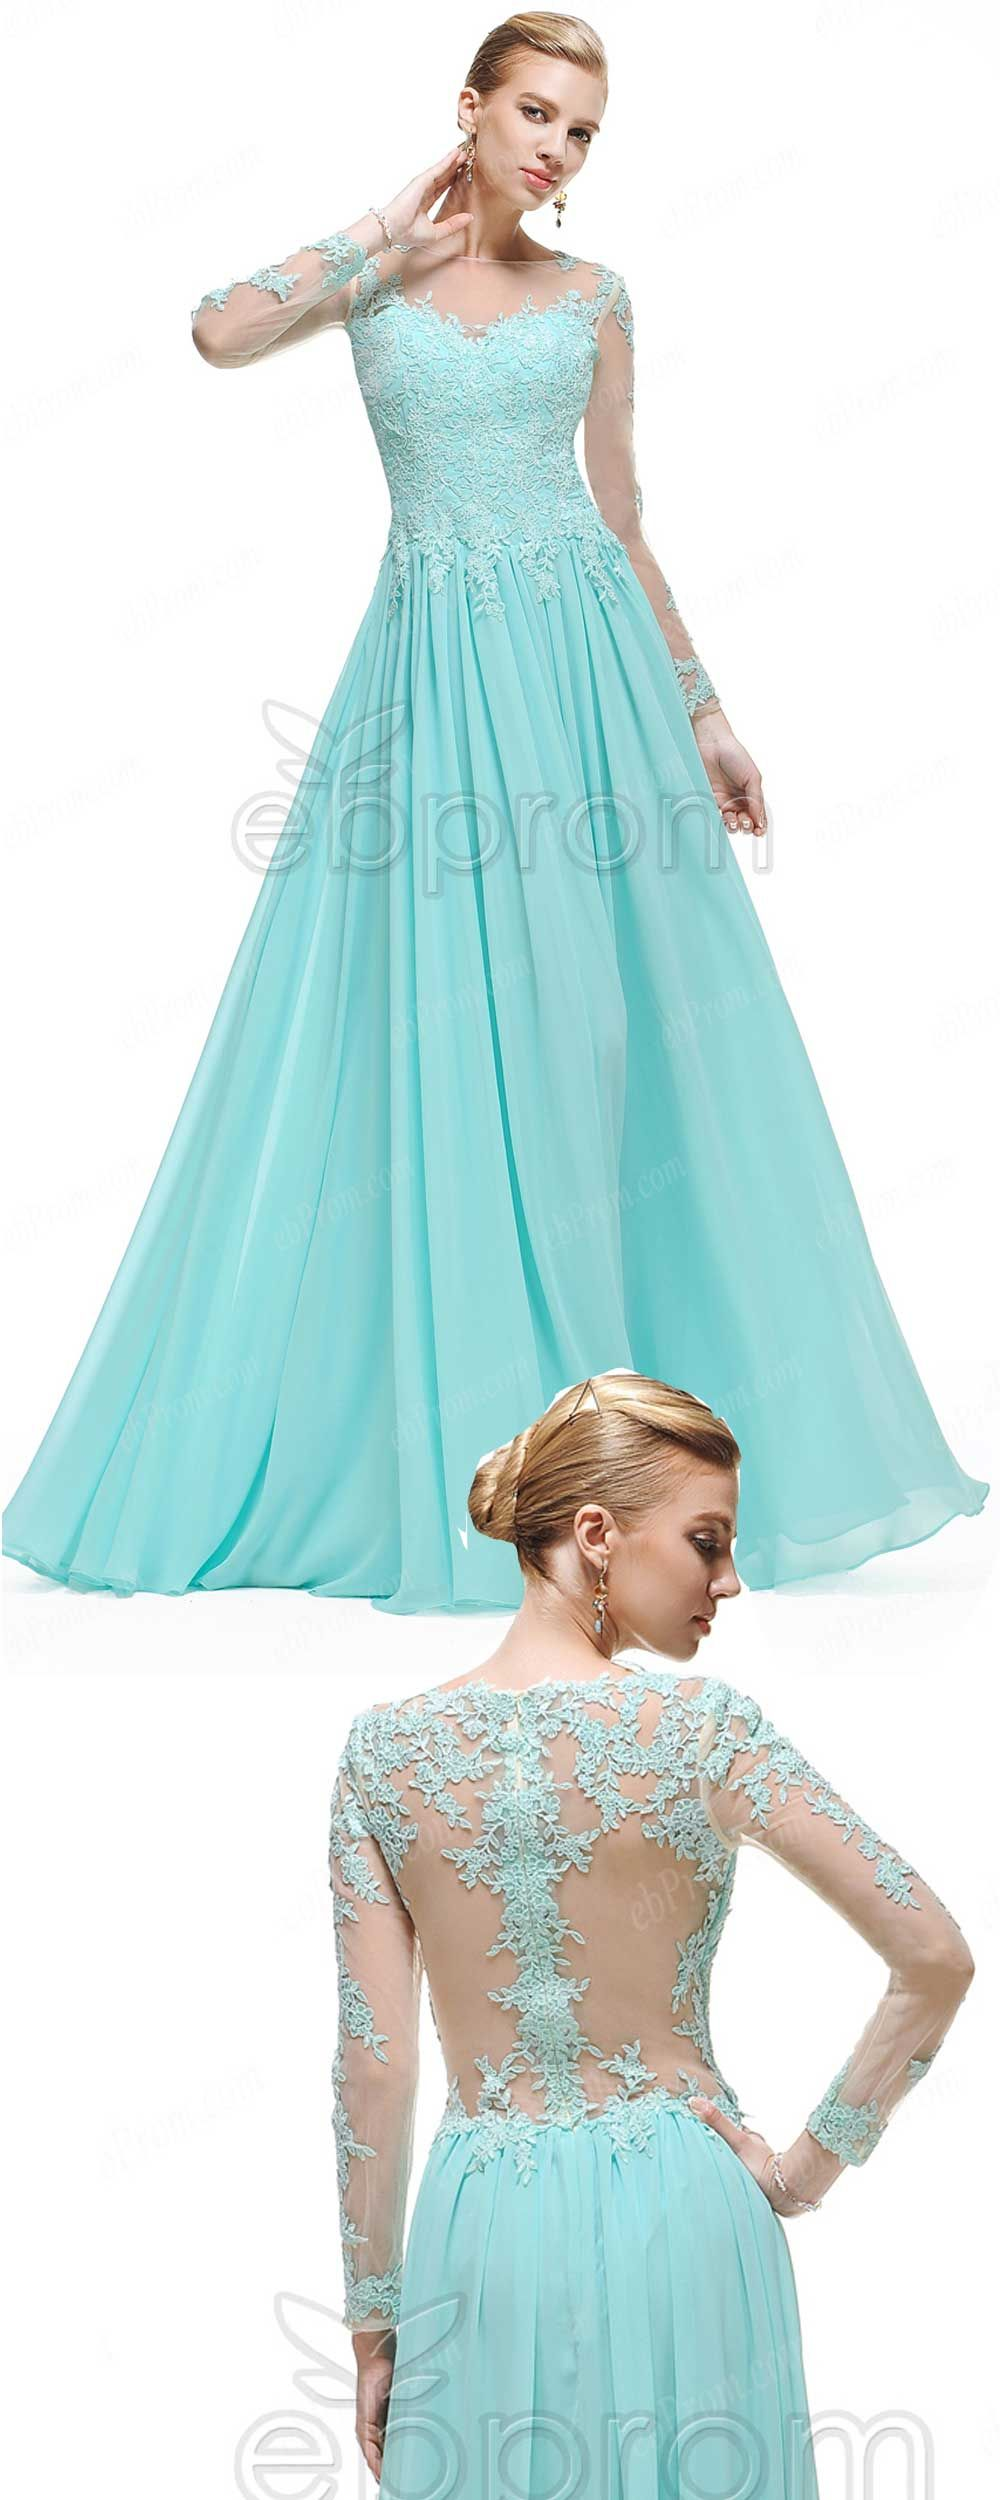 Modest blue backless prom dresses long sleeves embellished mesh back